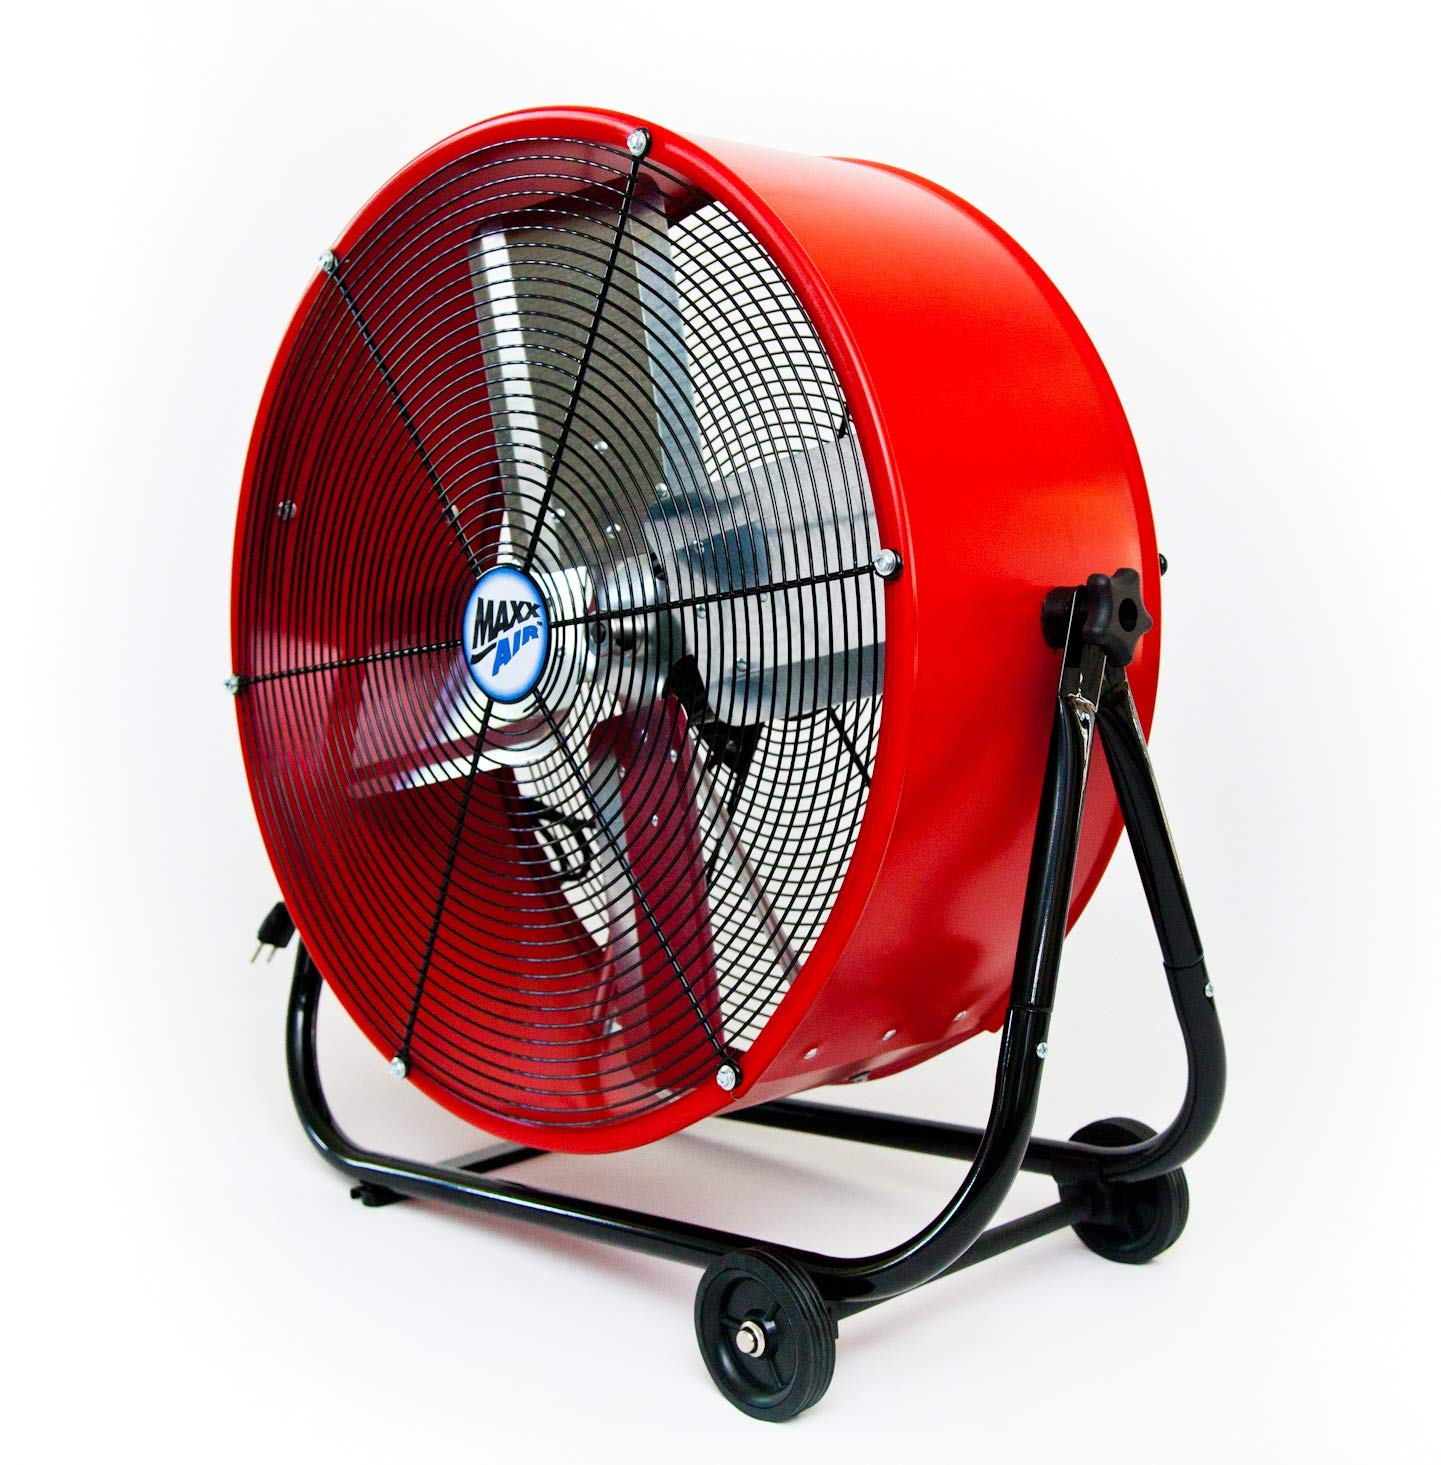 Maxx Air | Industrial Grade Air Circulator for Garage, Shop, Patio, Barn Use | BF24TFREDUPS 24-Inch High Velocity Drum Fan, Two-Speed, Red